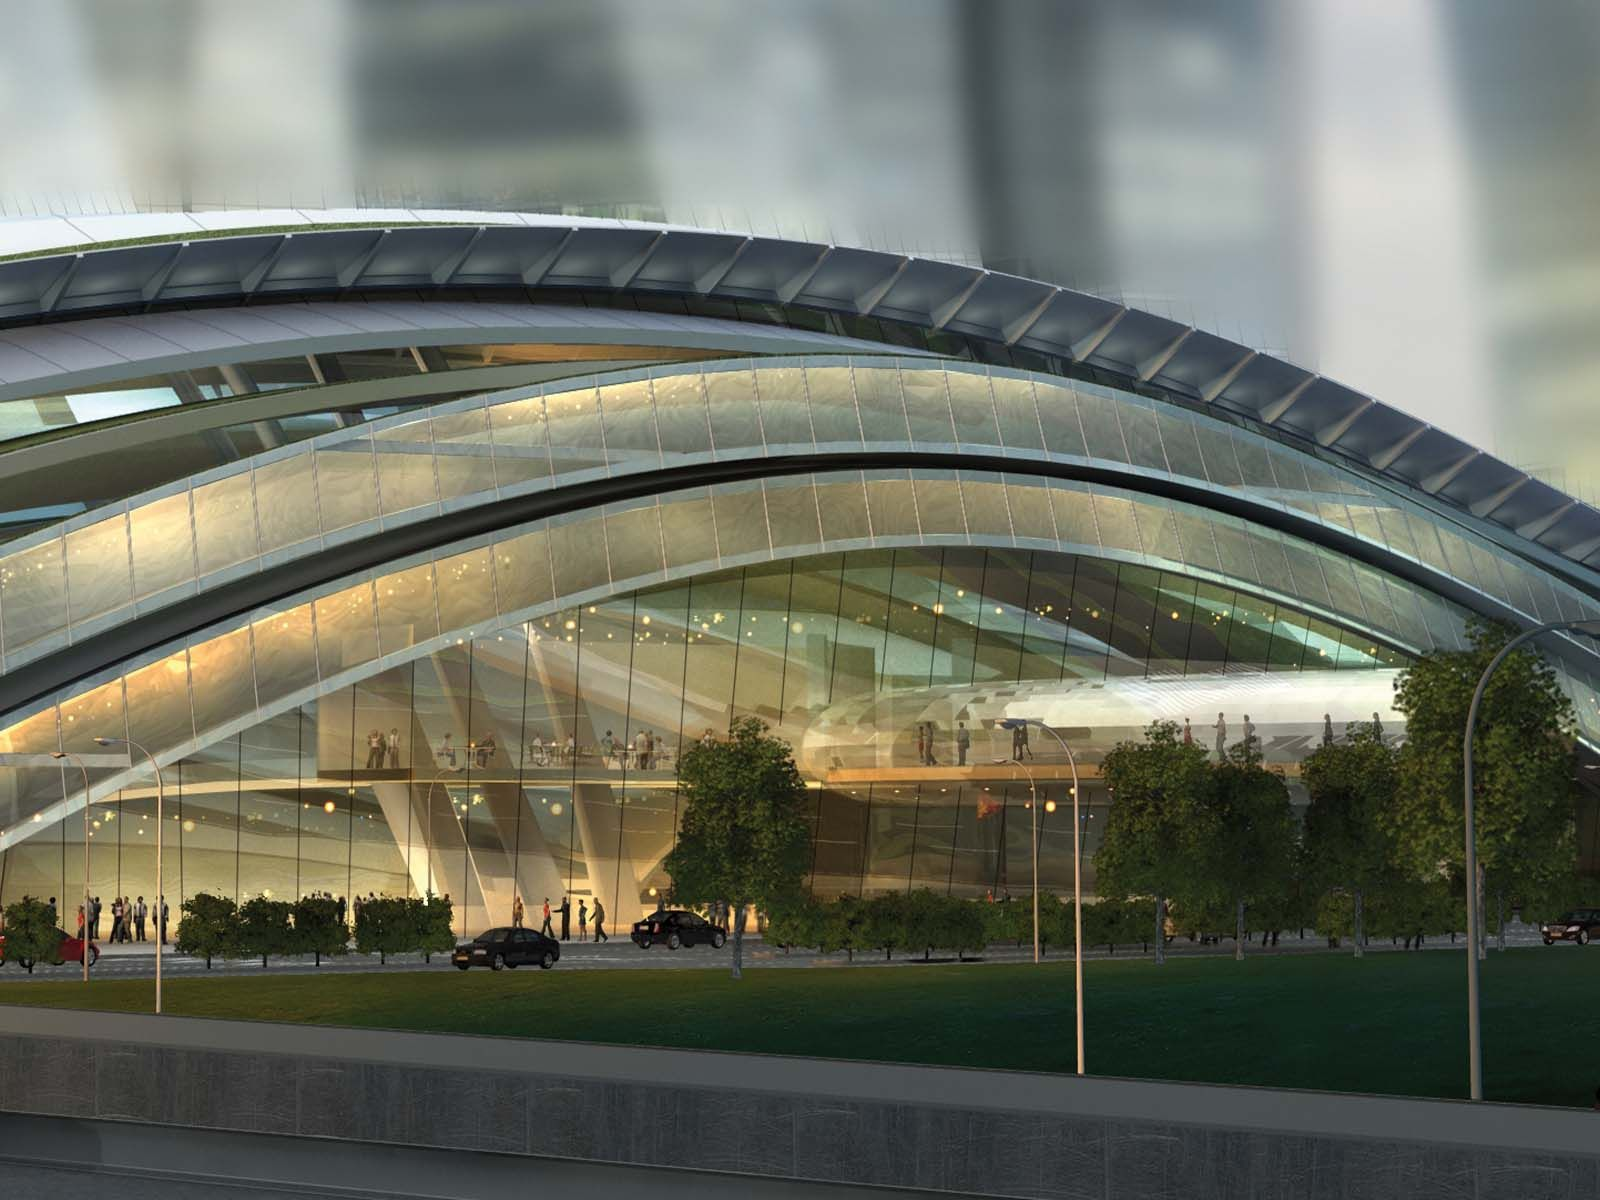 Express Rail Link West Kowloon Terminus Hong Kong   Kowloon. Service design. Architecture